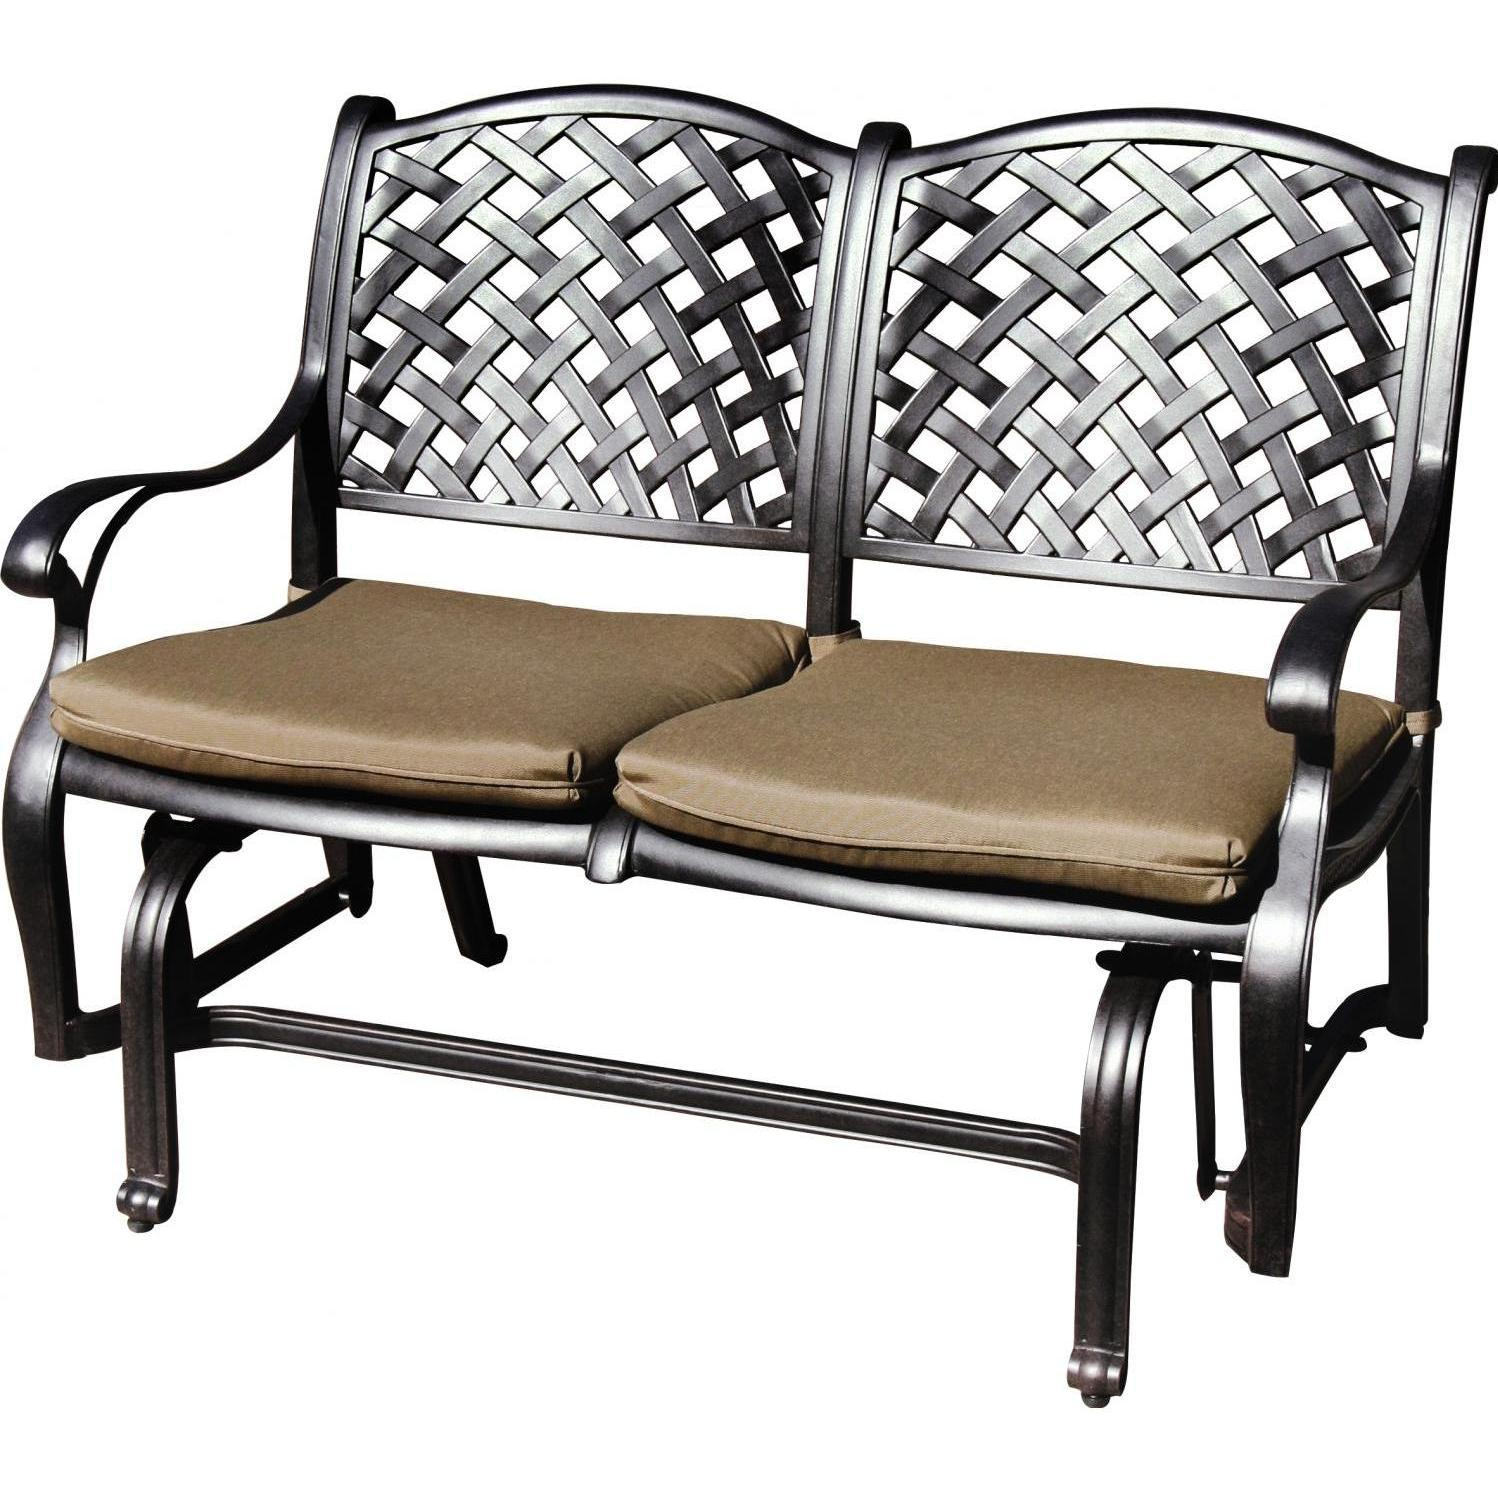 Darlee Nassau Cast Aluminum Patio Bench Glider Throughout Iron Double Patio Glider Benches (Image 7 of 25)